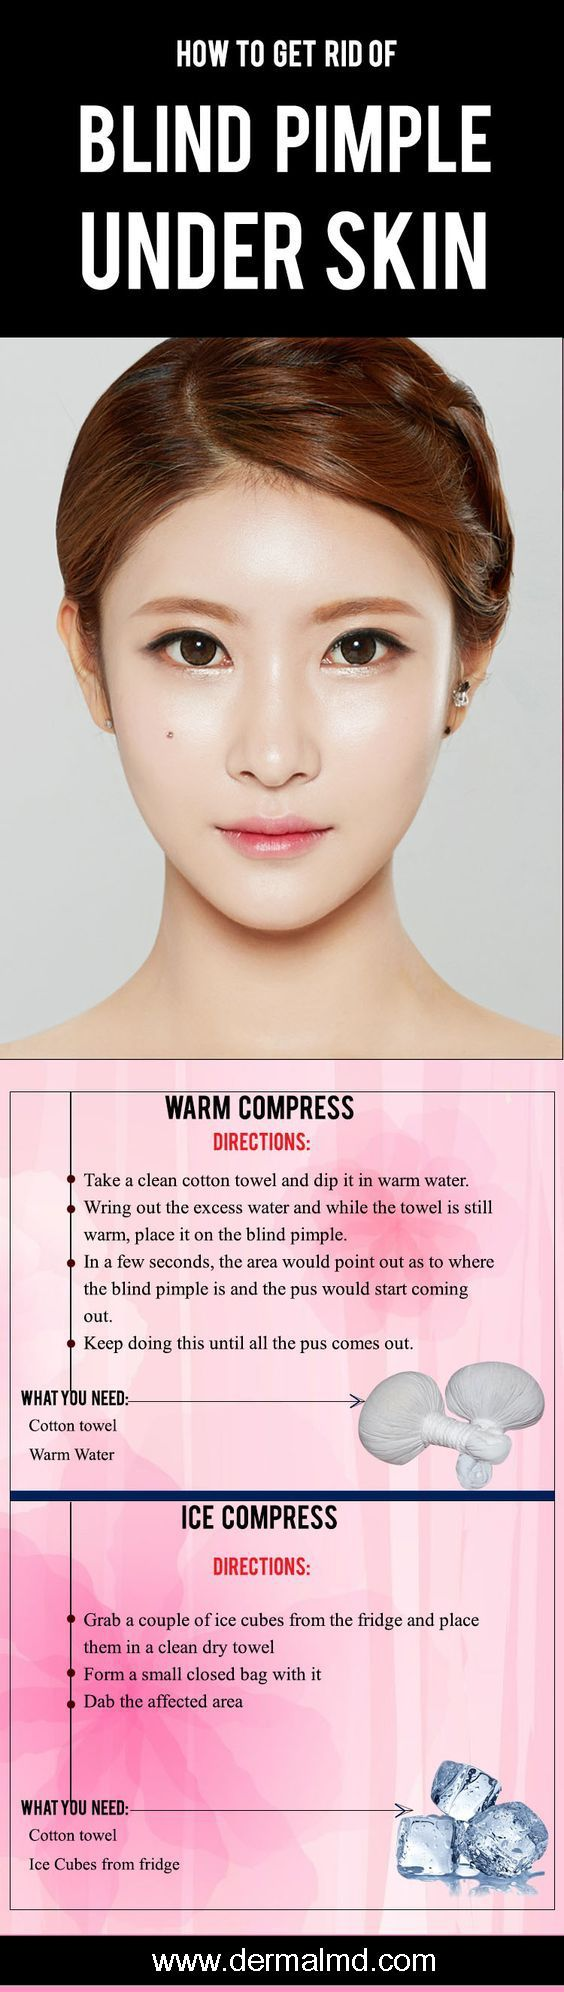 How To Make A Warm Compress : compress, Compress, Compress,, Easily, Blind, Pimples, Which, Present, Under, Sk…, Pimple,, Nose,